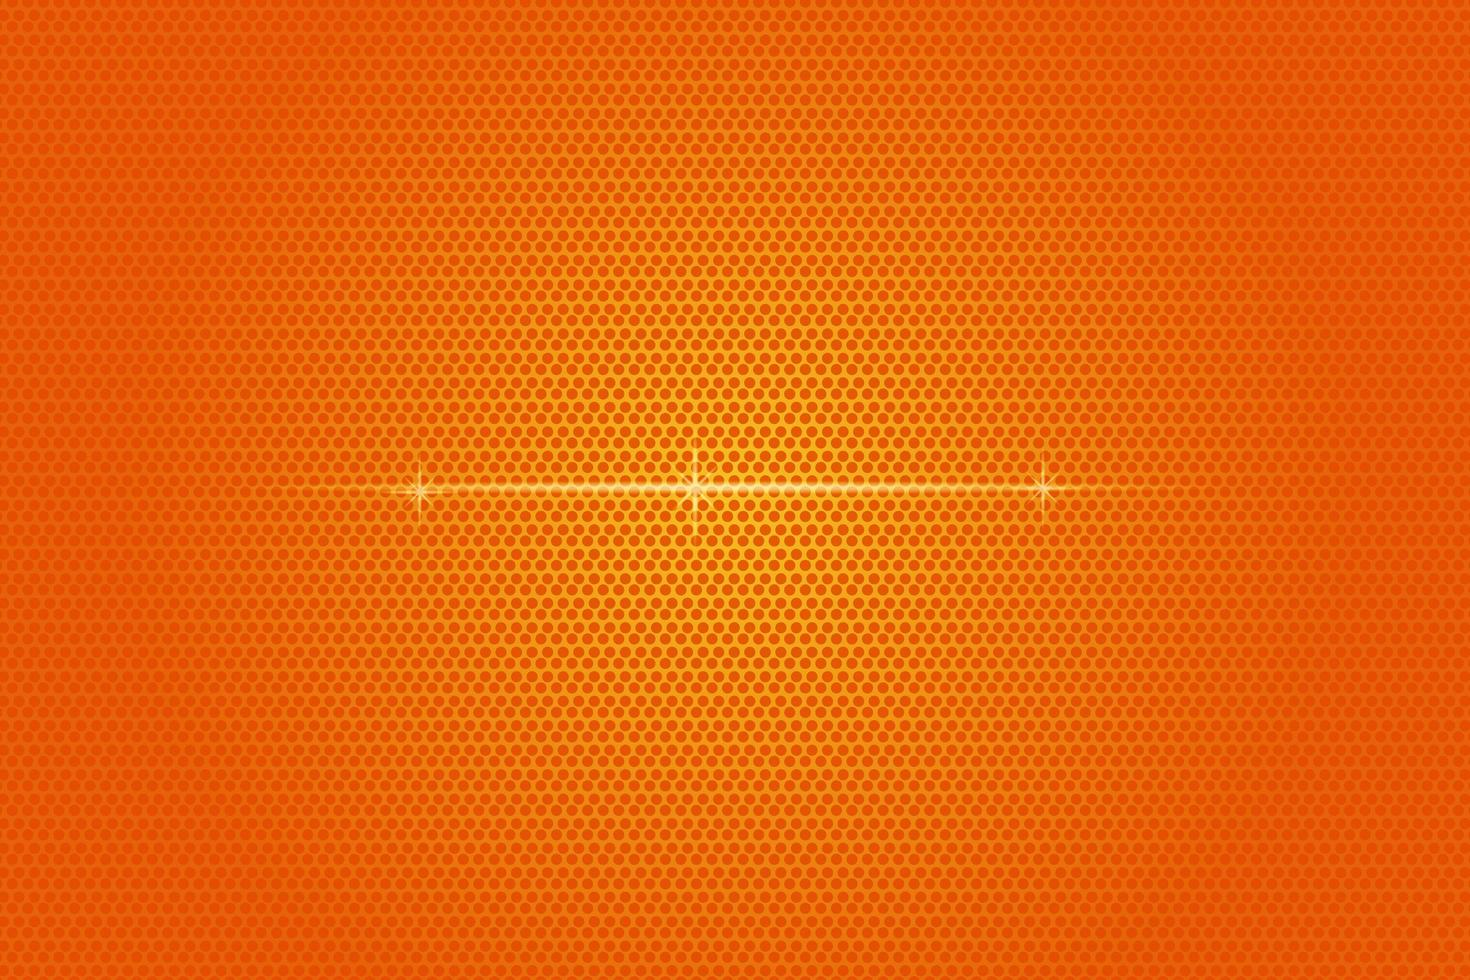 orange grill pattern wallpaper background vector